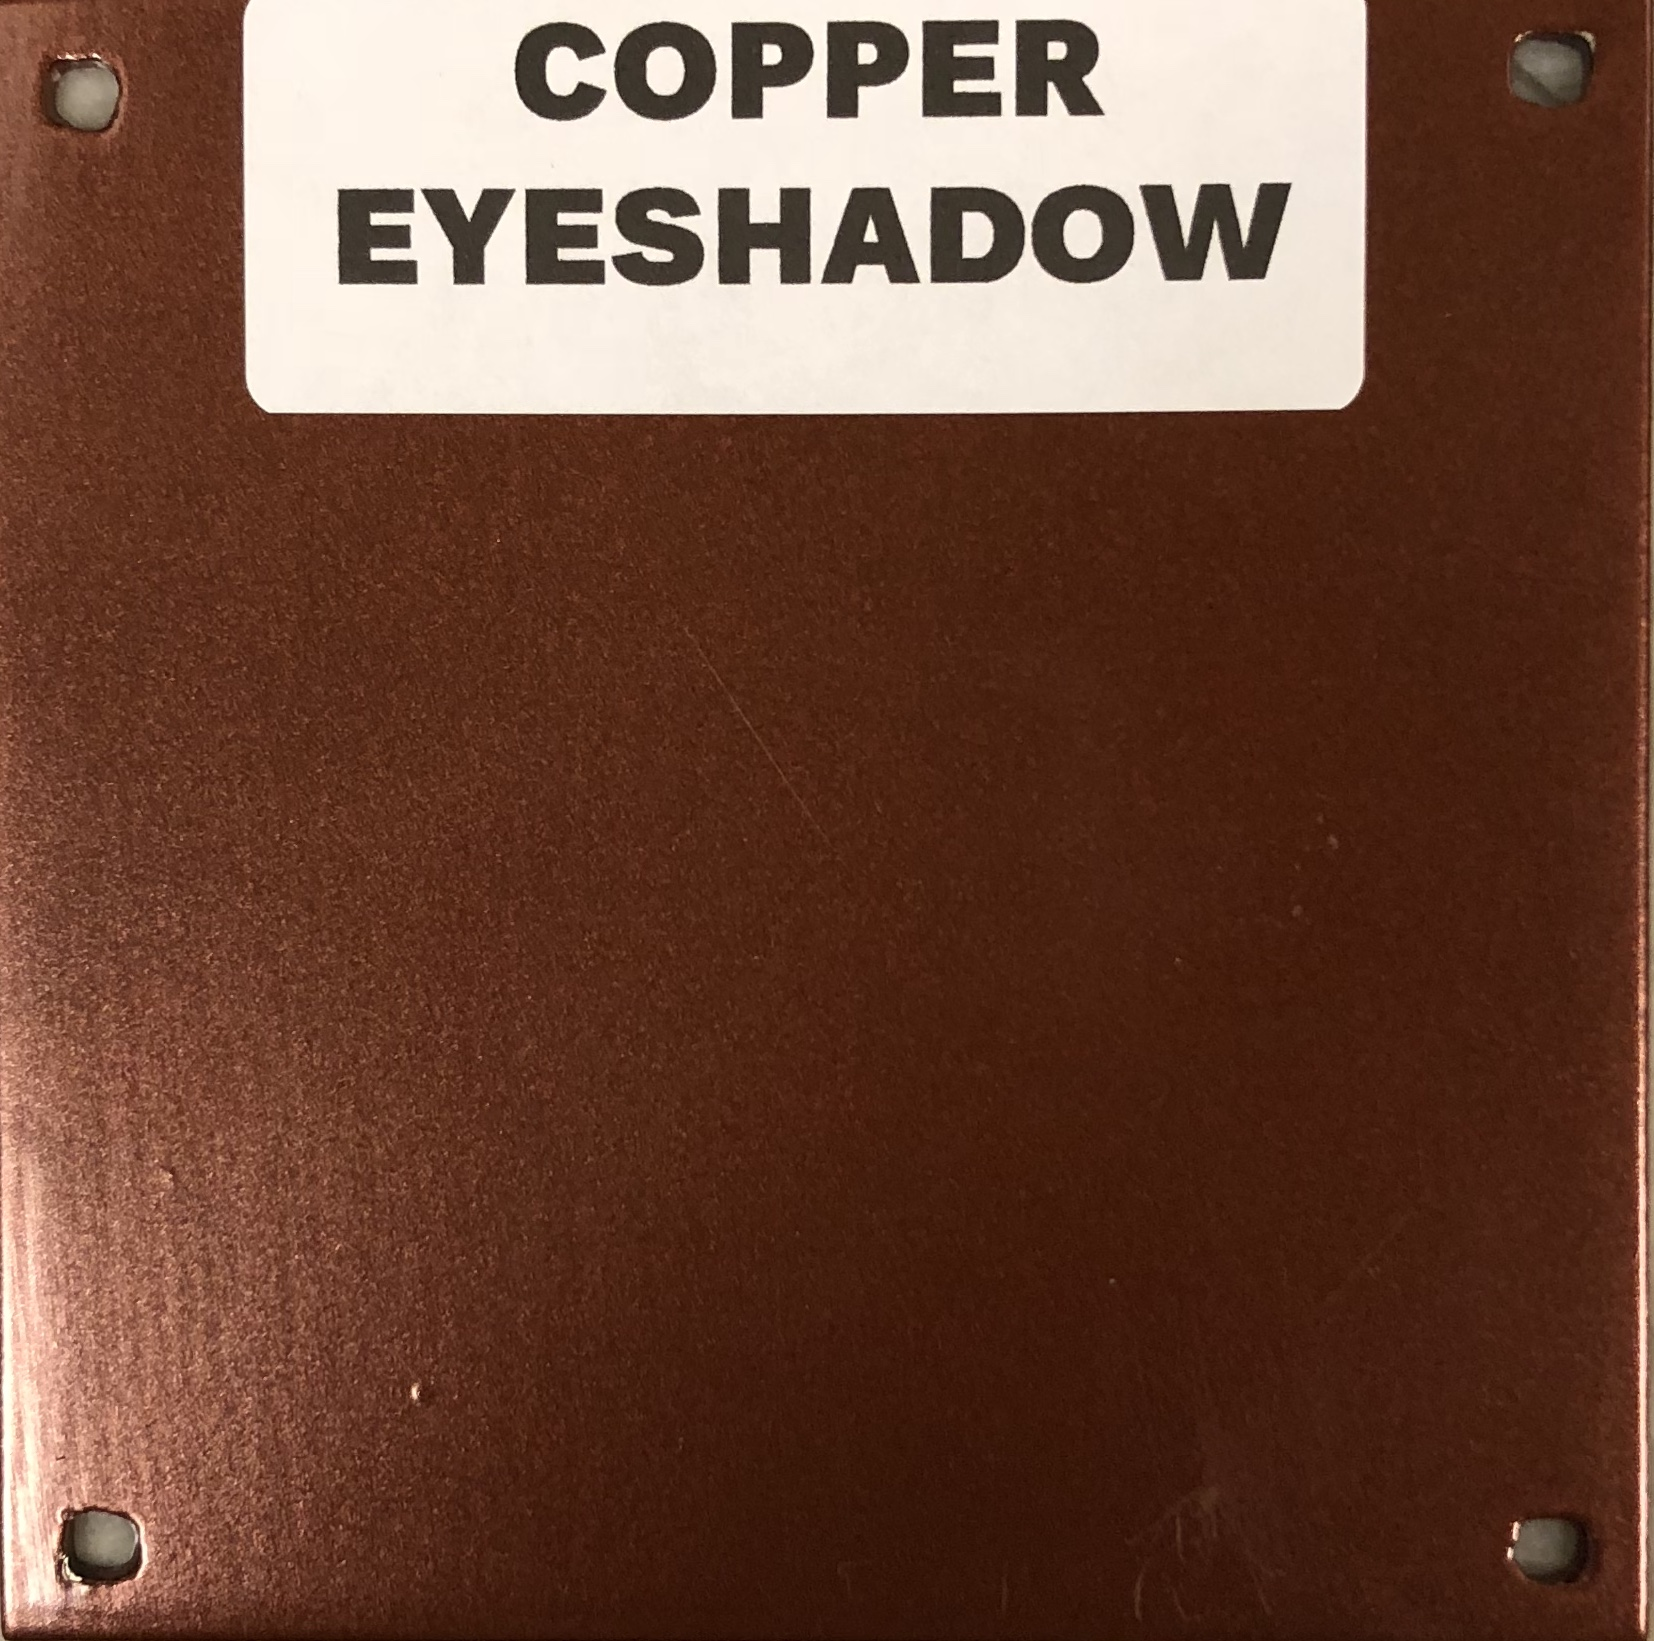 NEW COPPER EYESHADOW